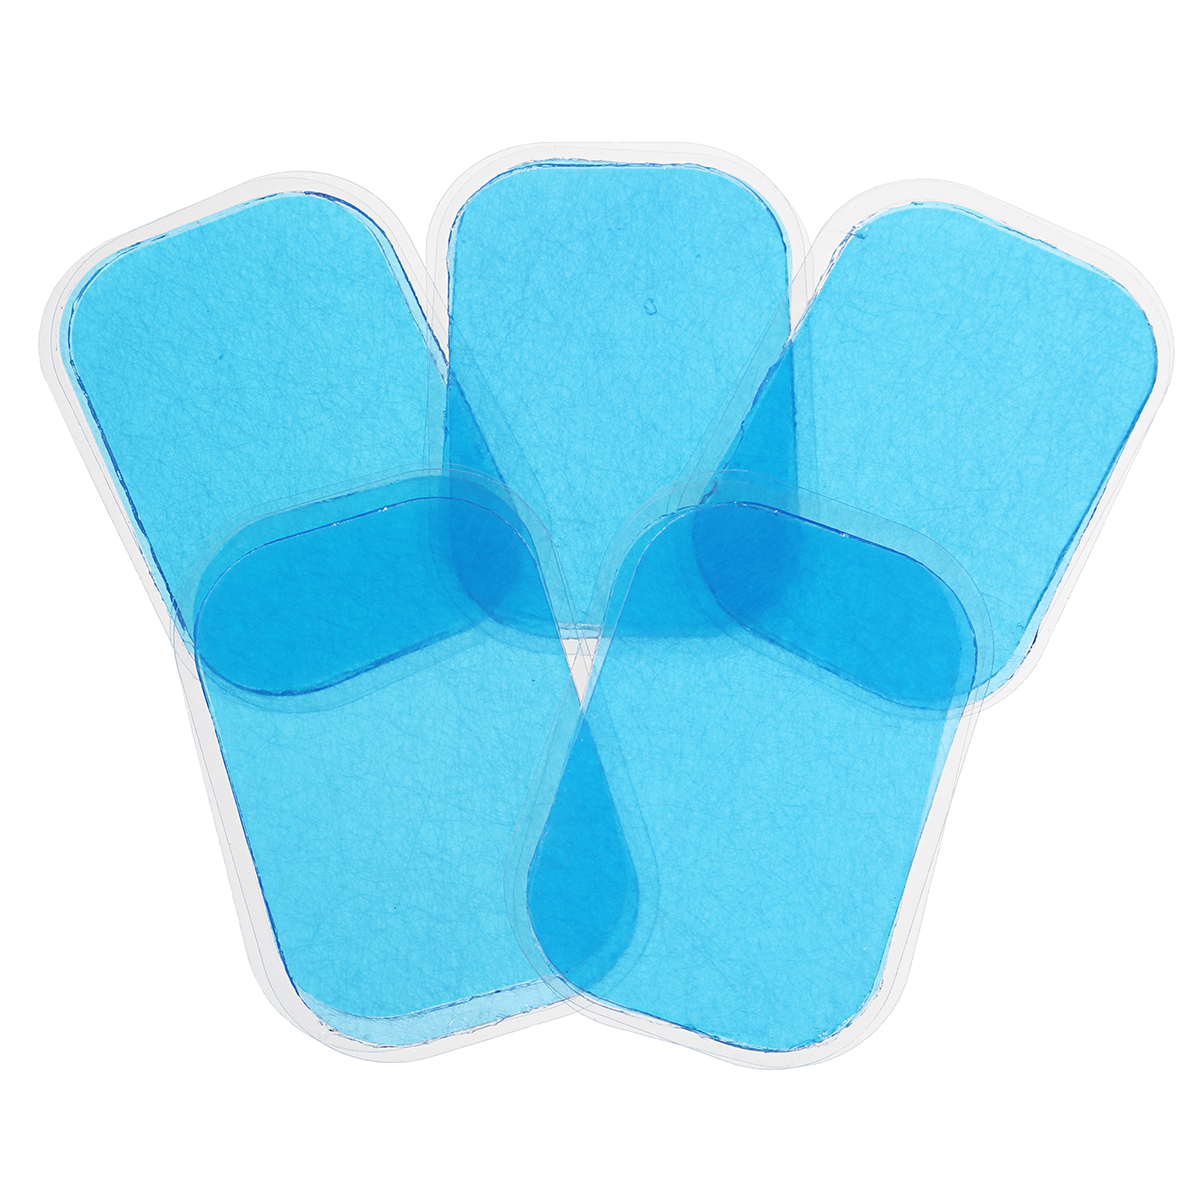 KALOAD 16PCS/Set Blue Replacement Gel For Abdominal Muscle Training Pads Gear Fitness Massage